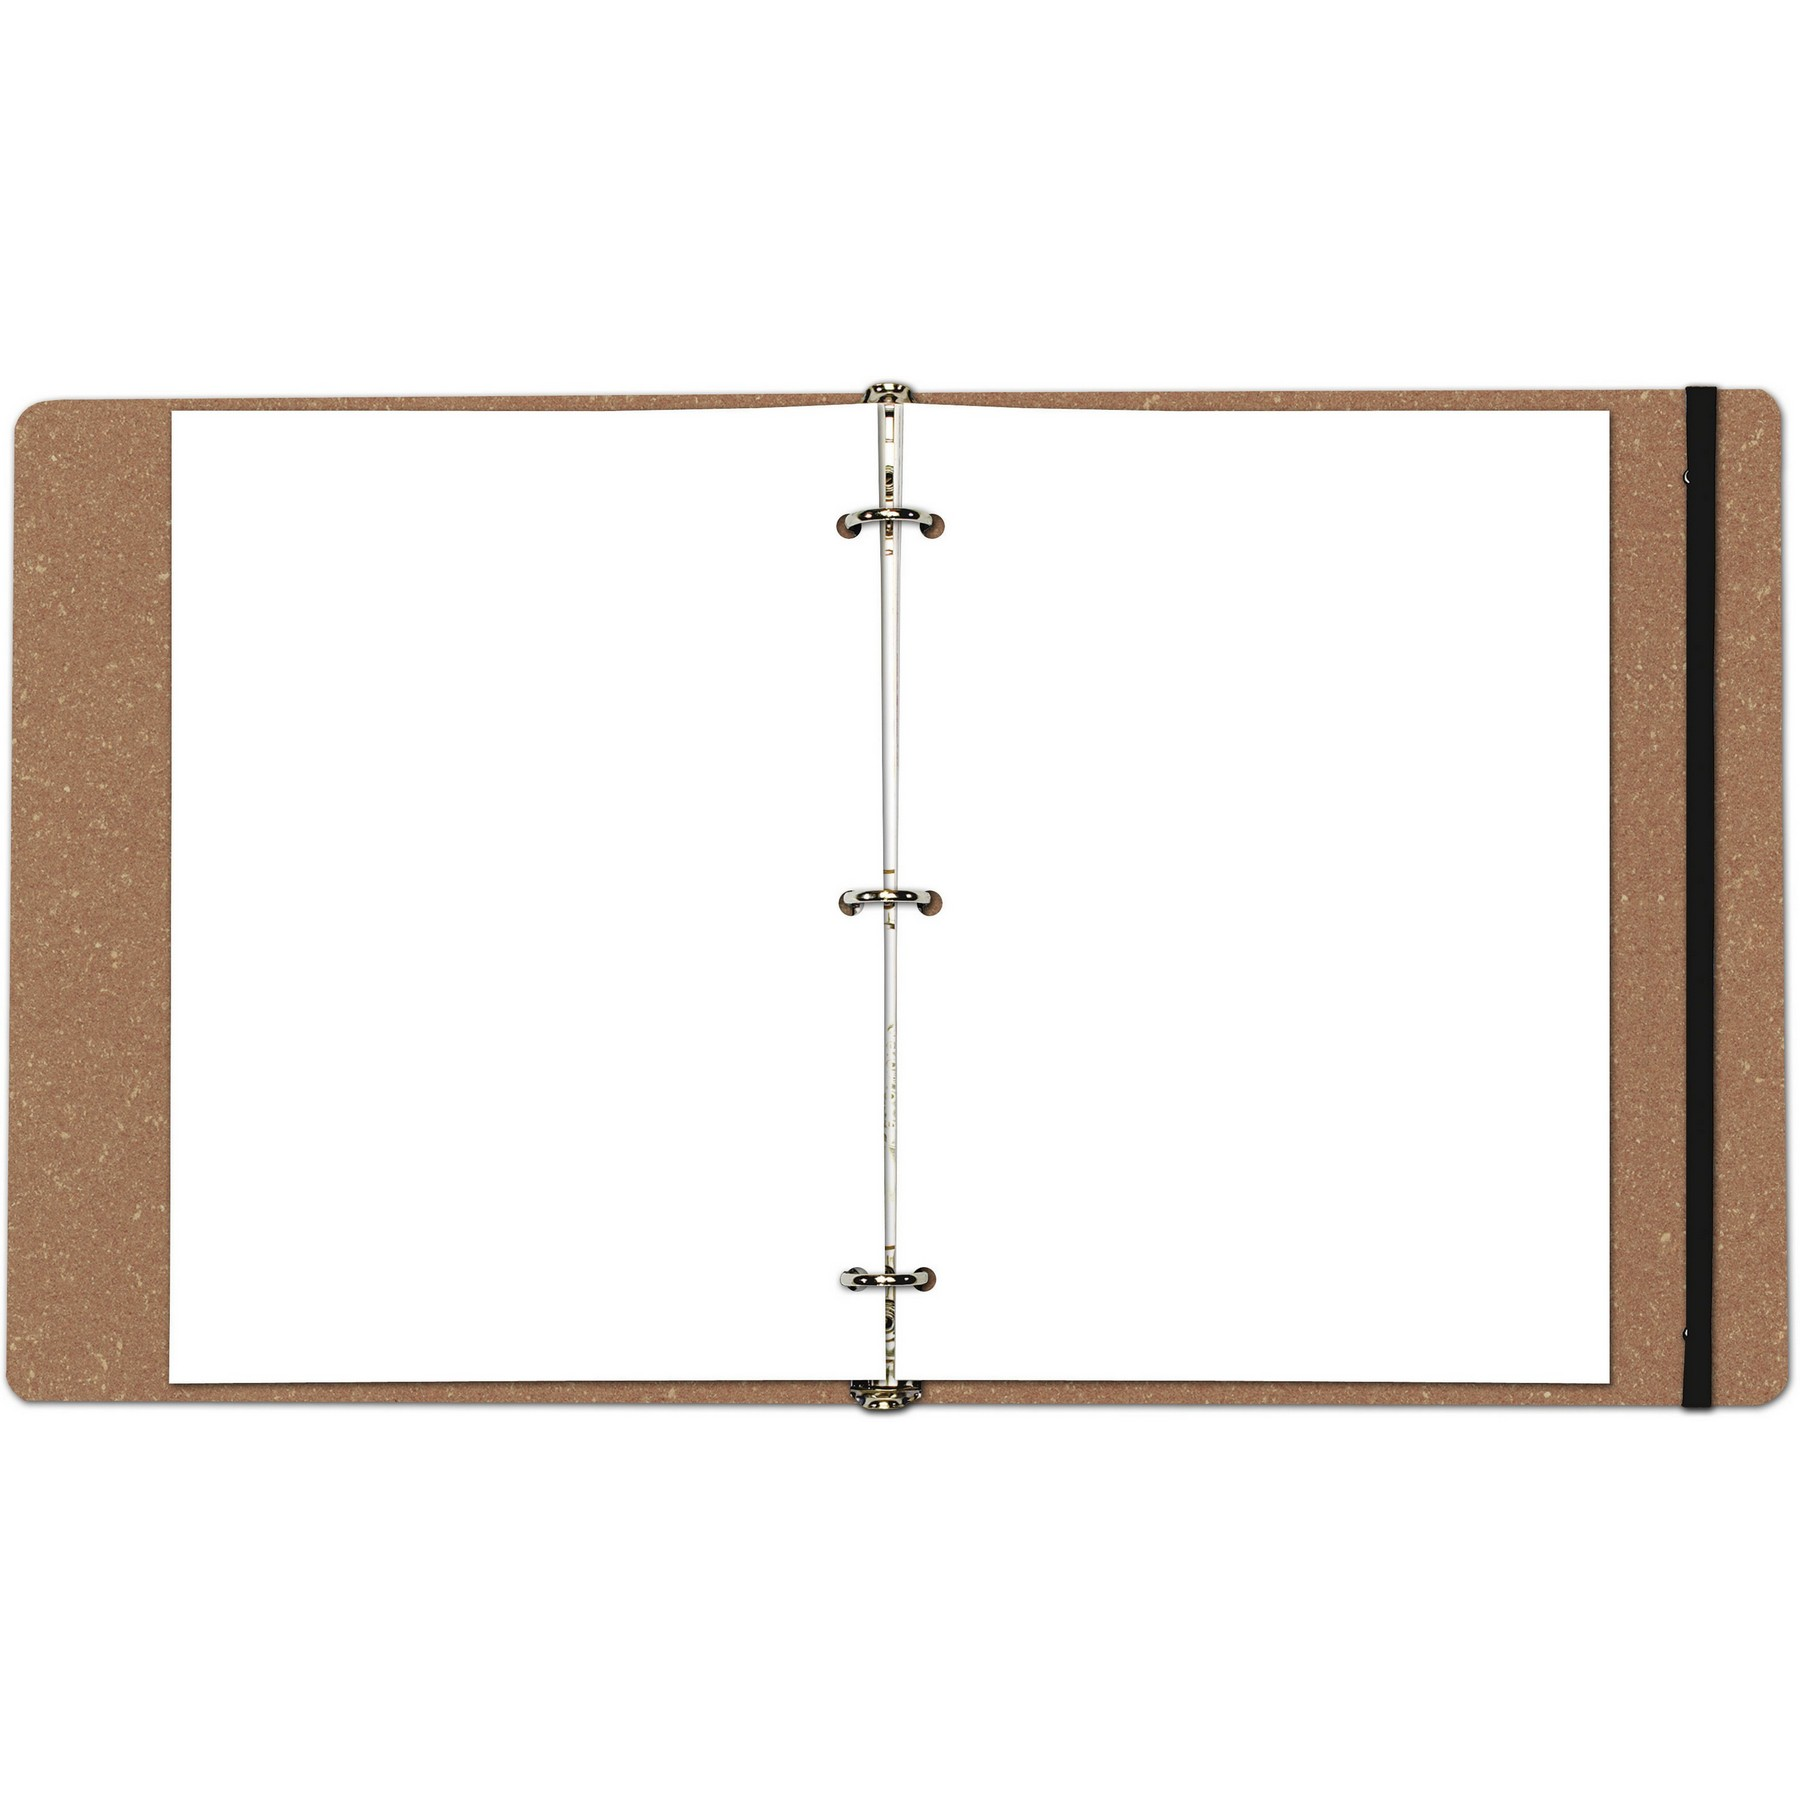 Binders – Large Leather – Refillable